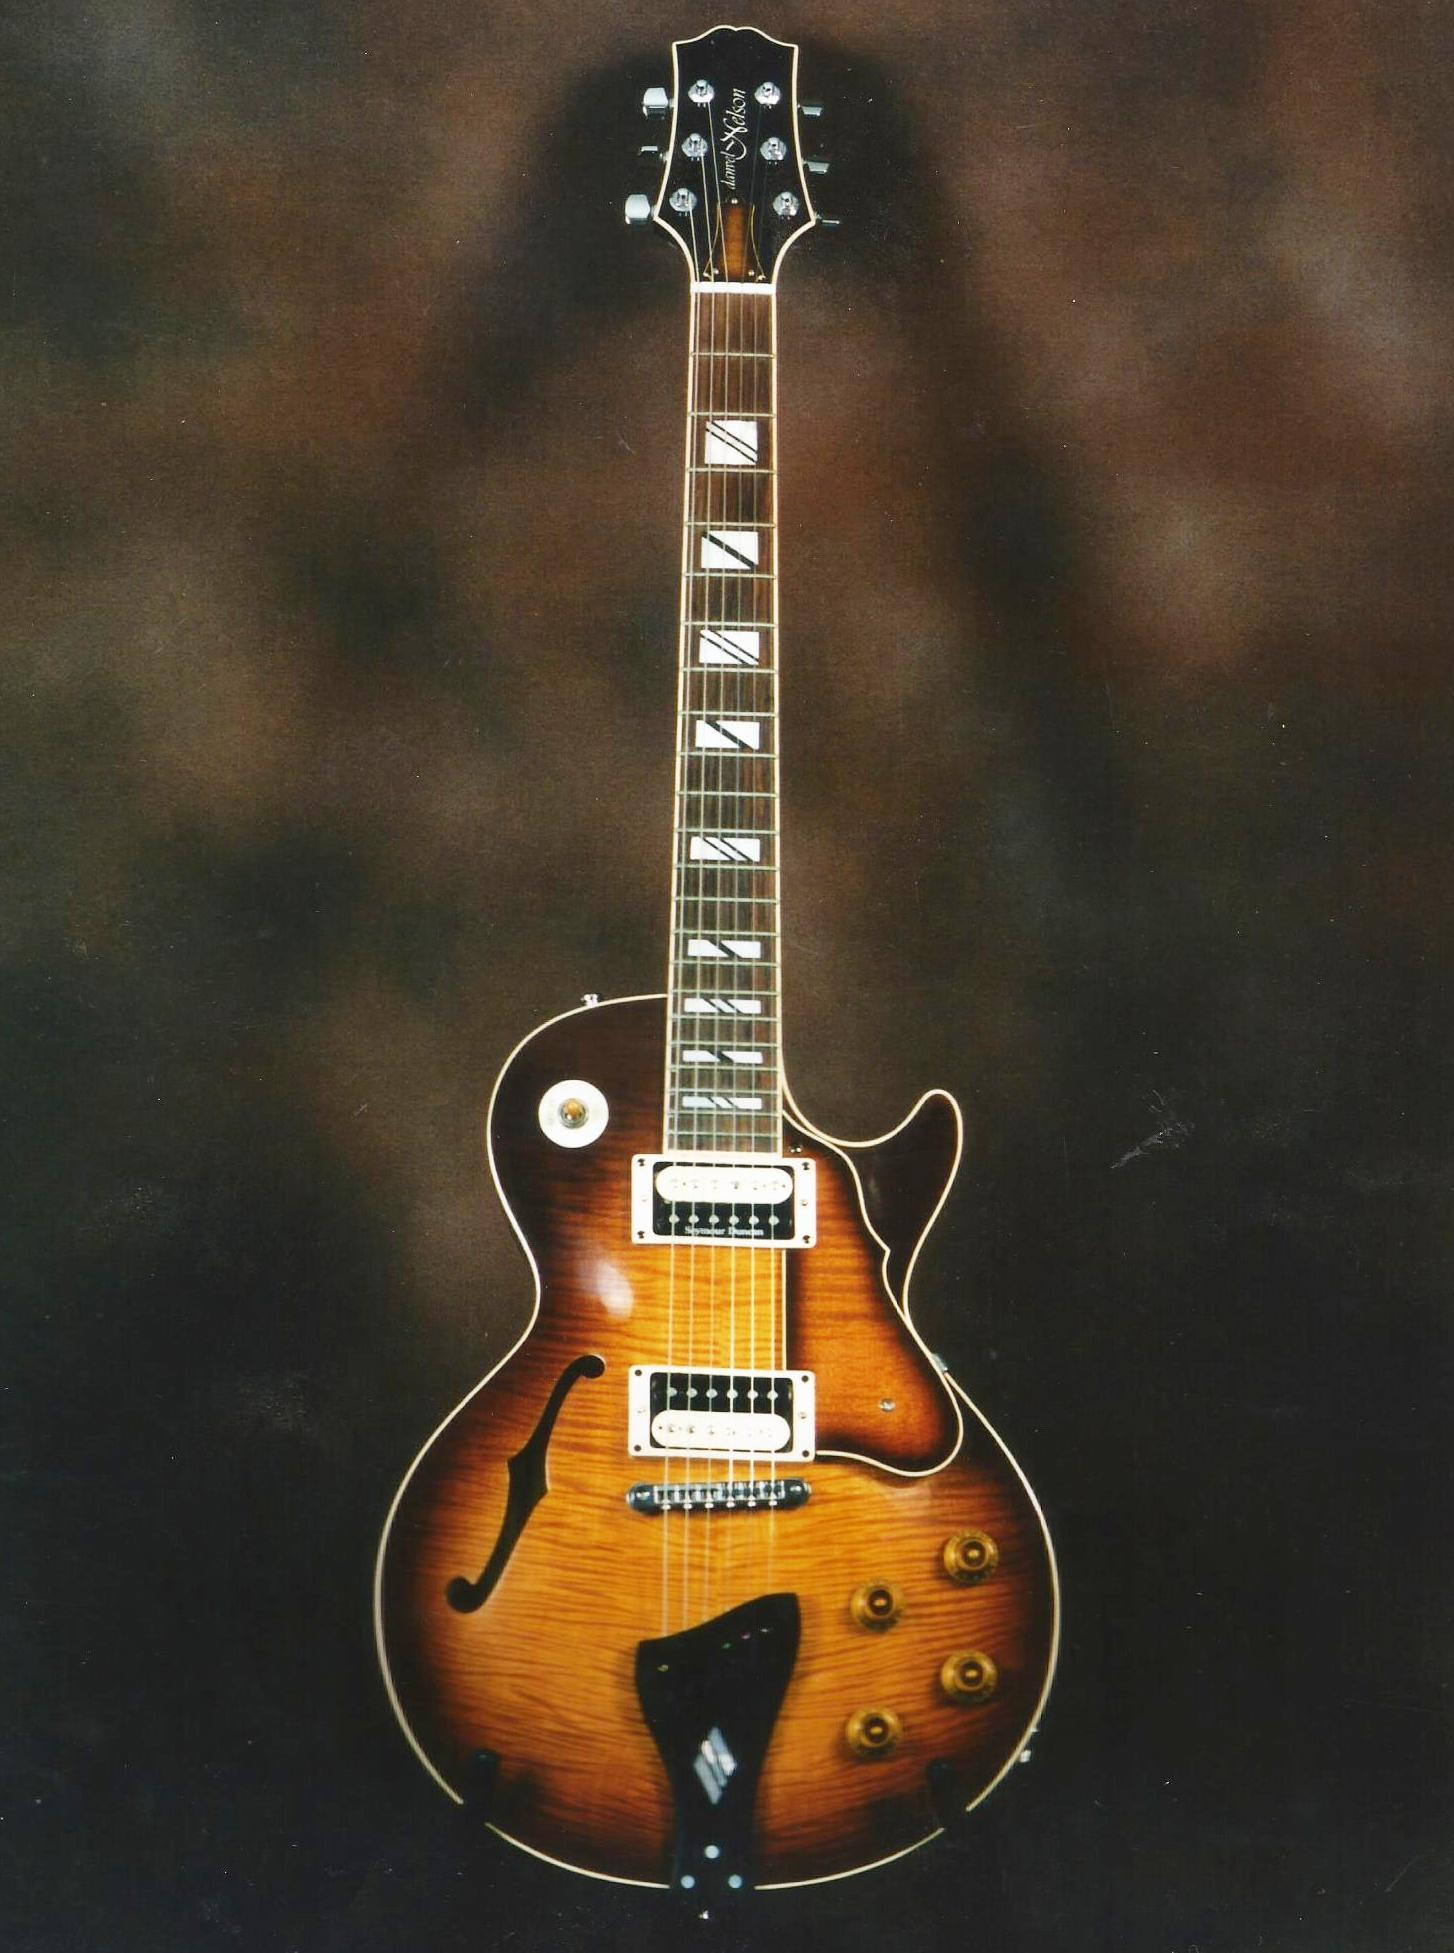 Les Paul semi solid type Guitar